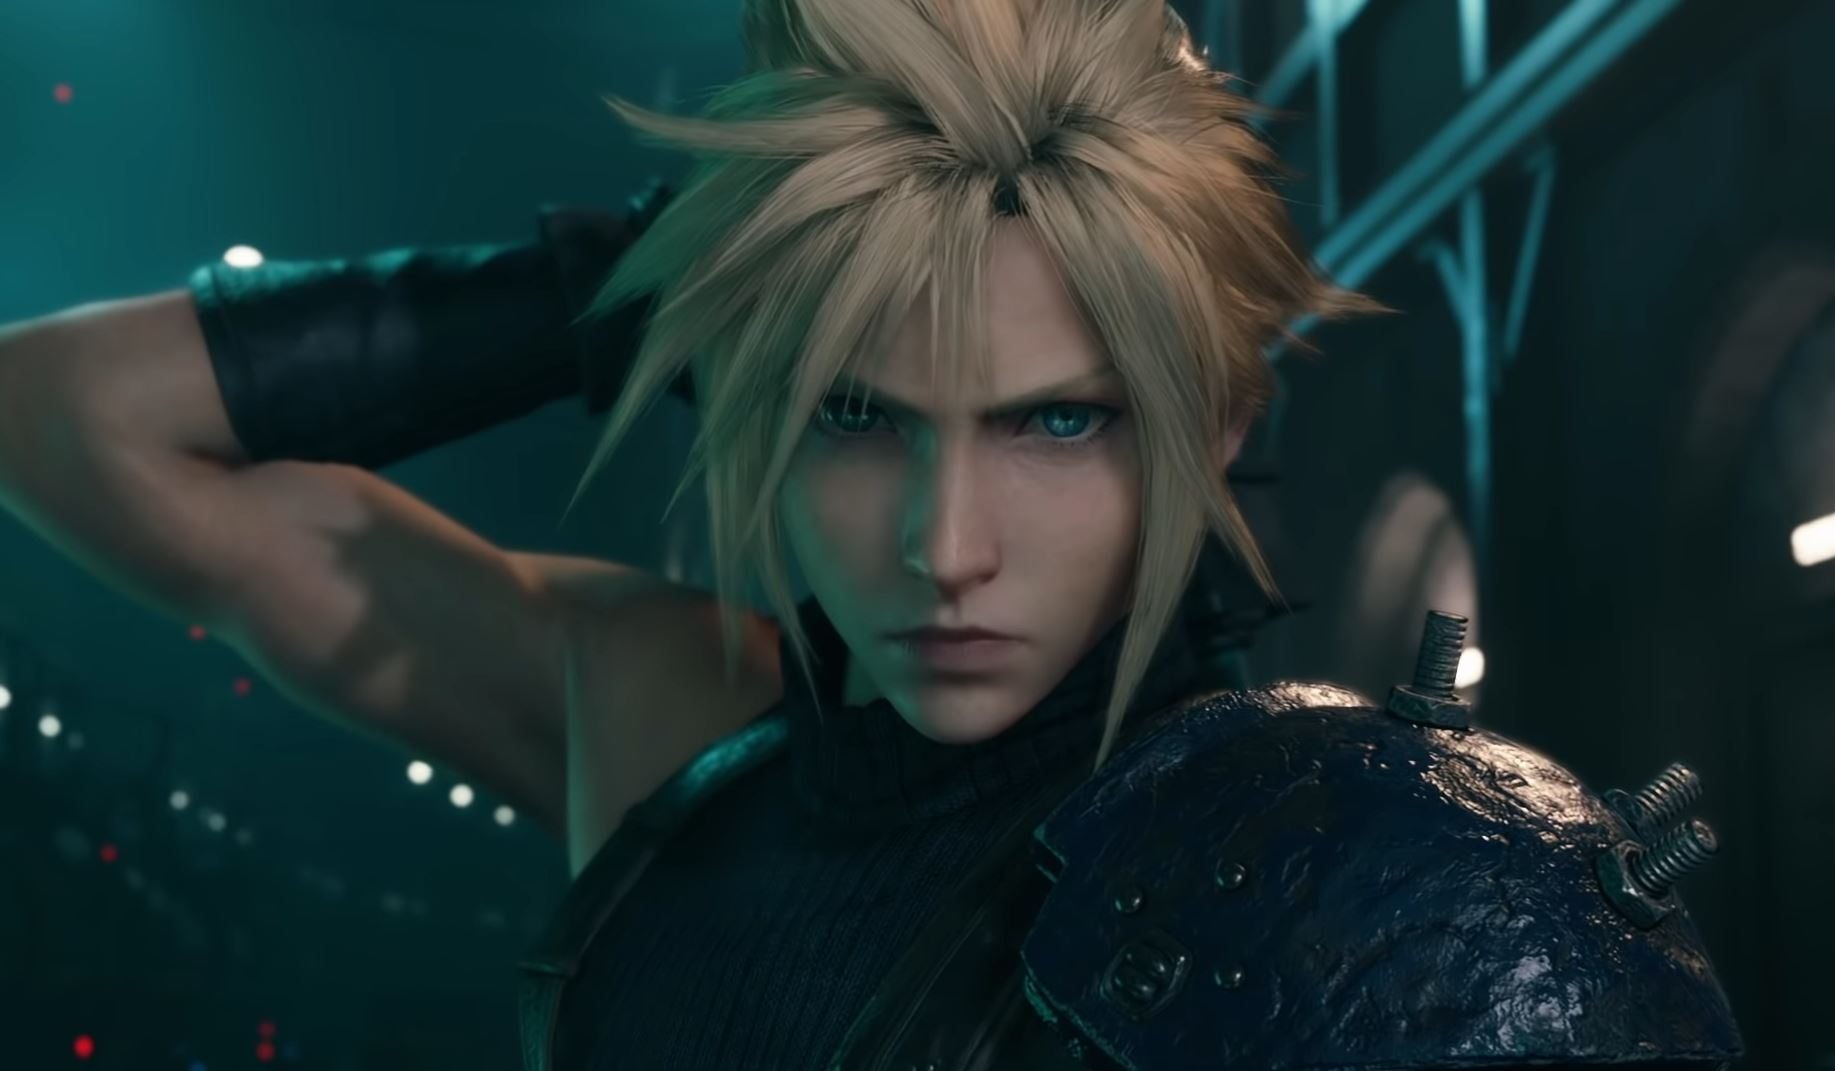 Final Fantasy VII Remake's opening cinematic has arrived - SlashGear